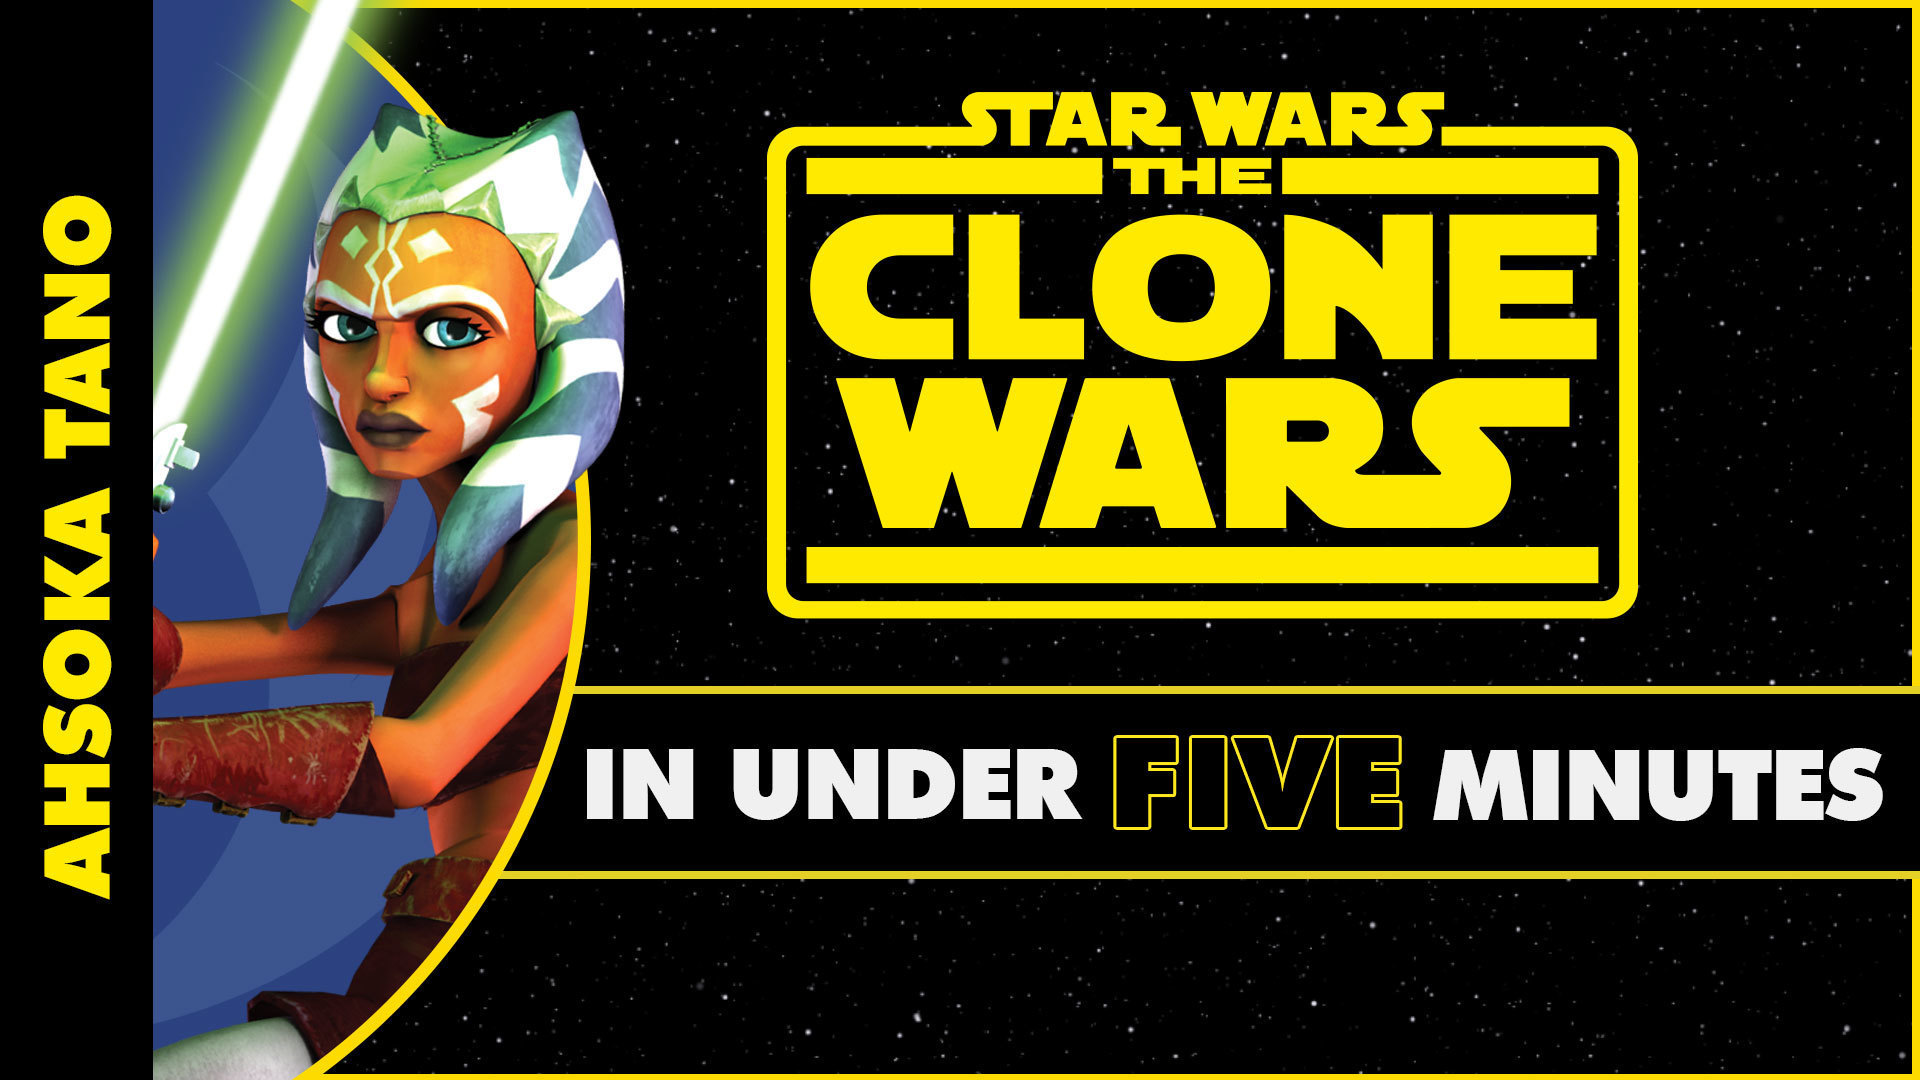 Ahsoka Tano's Journey in Star Wars: The Clone Wars in Under Five Minutes